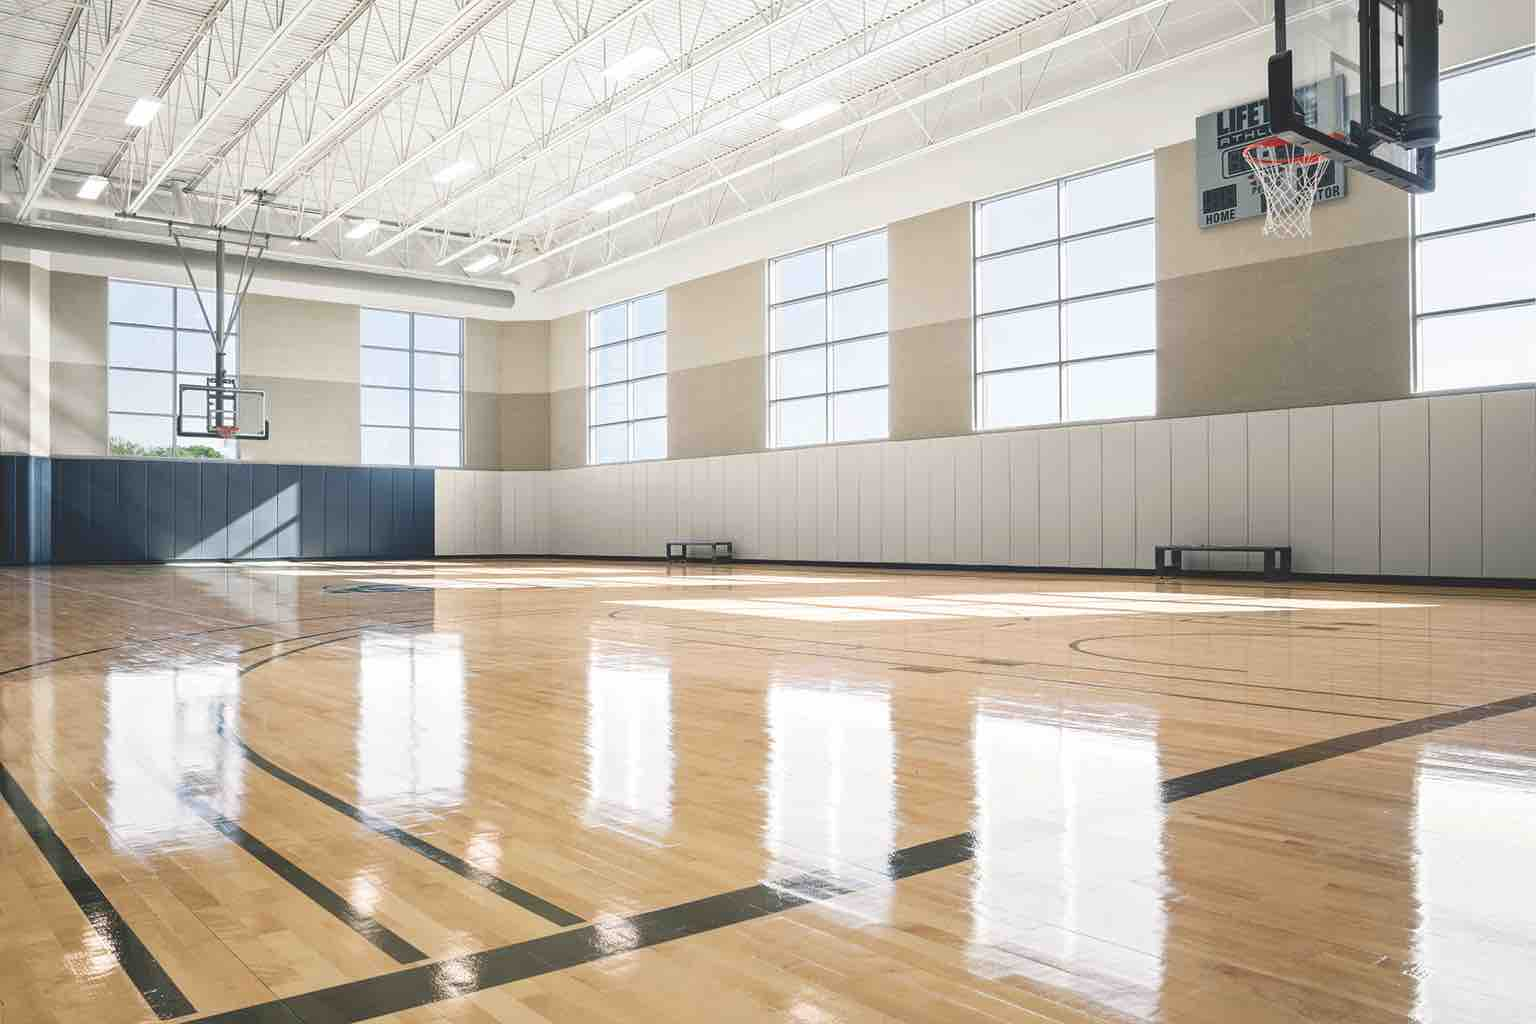 A spacious gym with a gleaming wood floor, basketball hoops and large, sun-filled windows